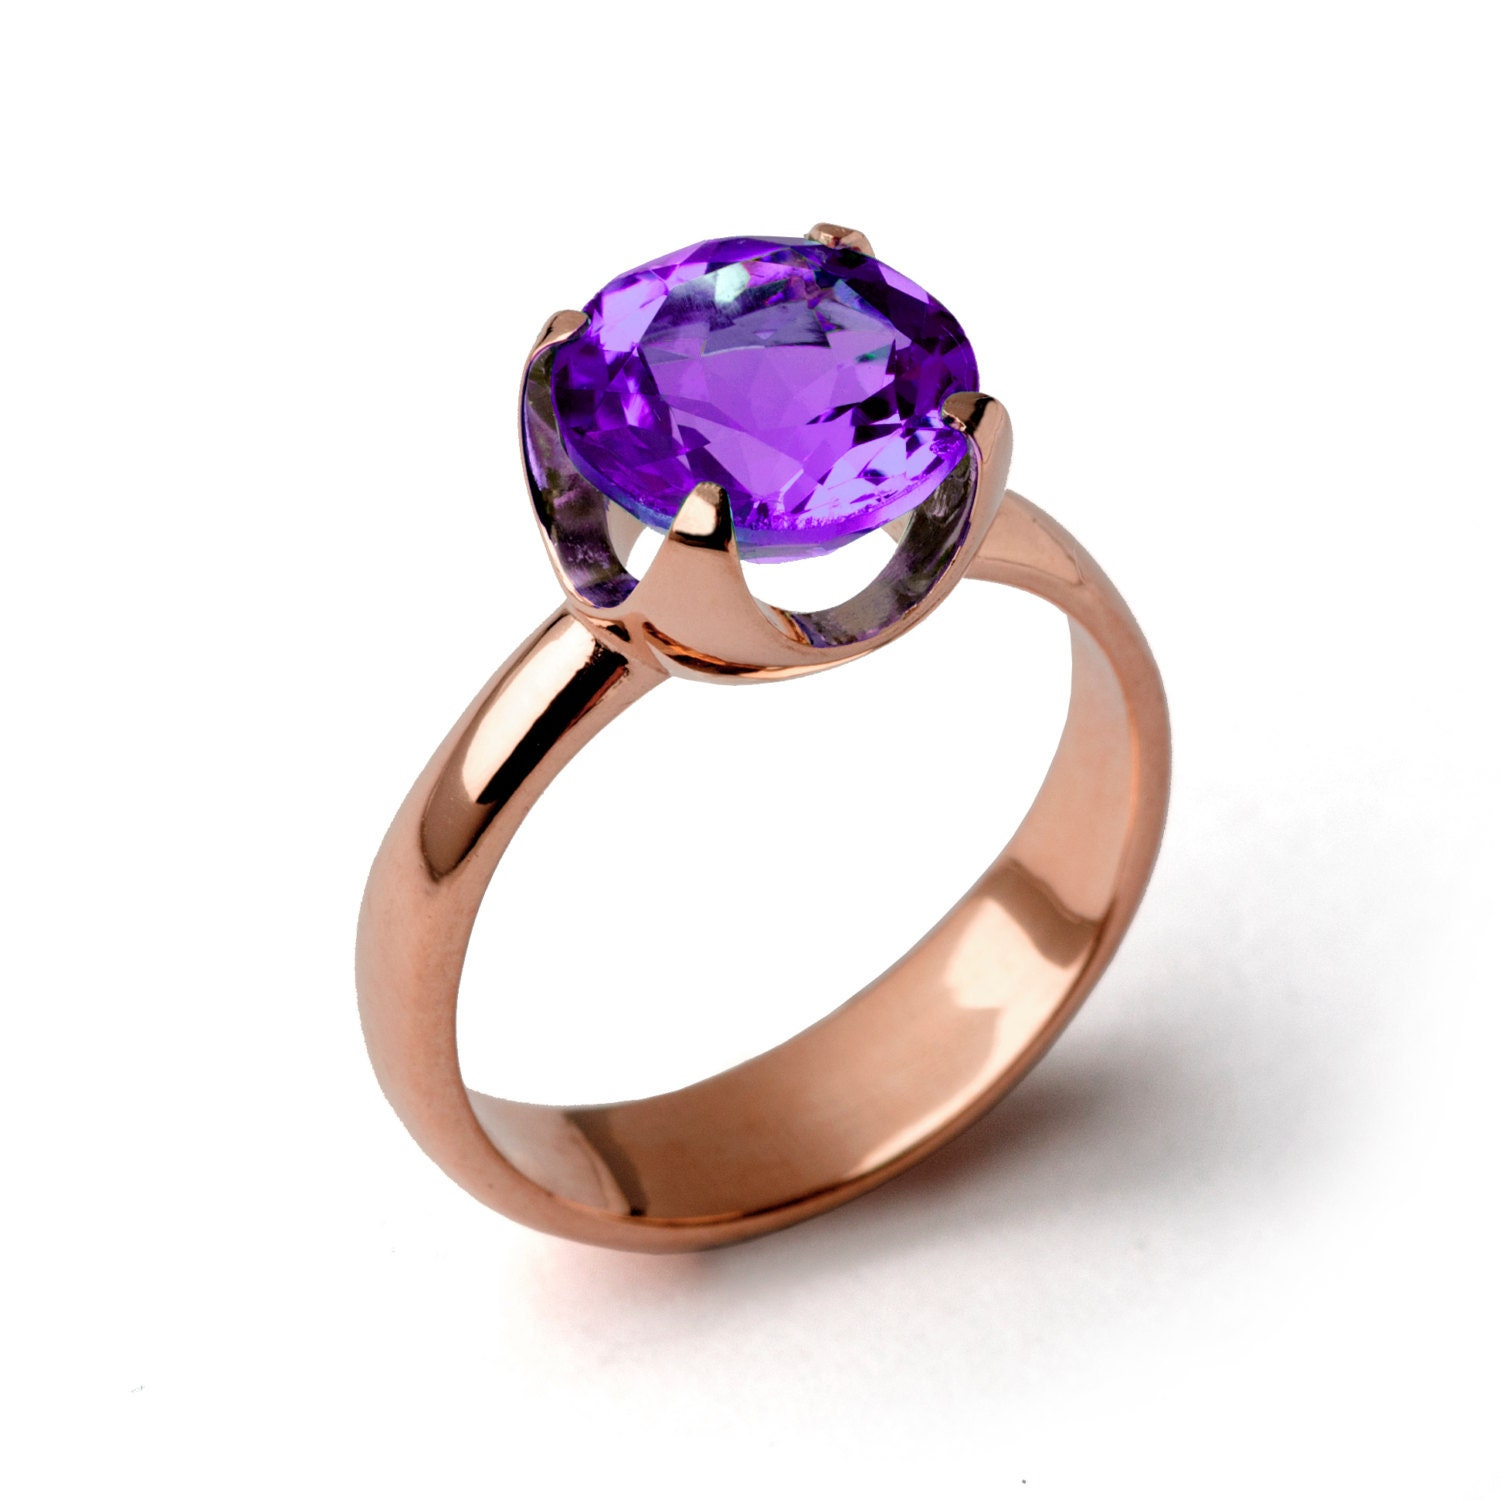 cup amethyst engagement ring purple amethyst ring rose gold. Black Bedroom Furniture Sets. Home Design Ideas